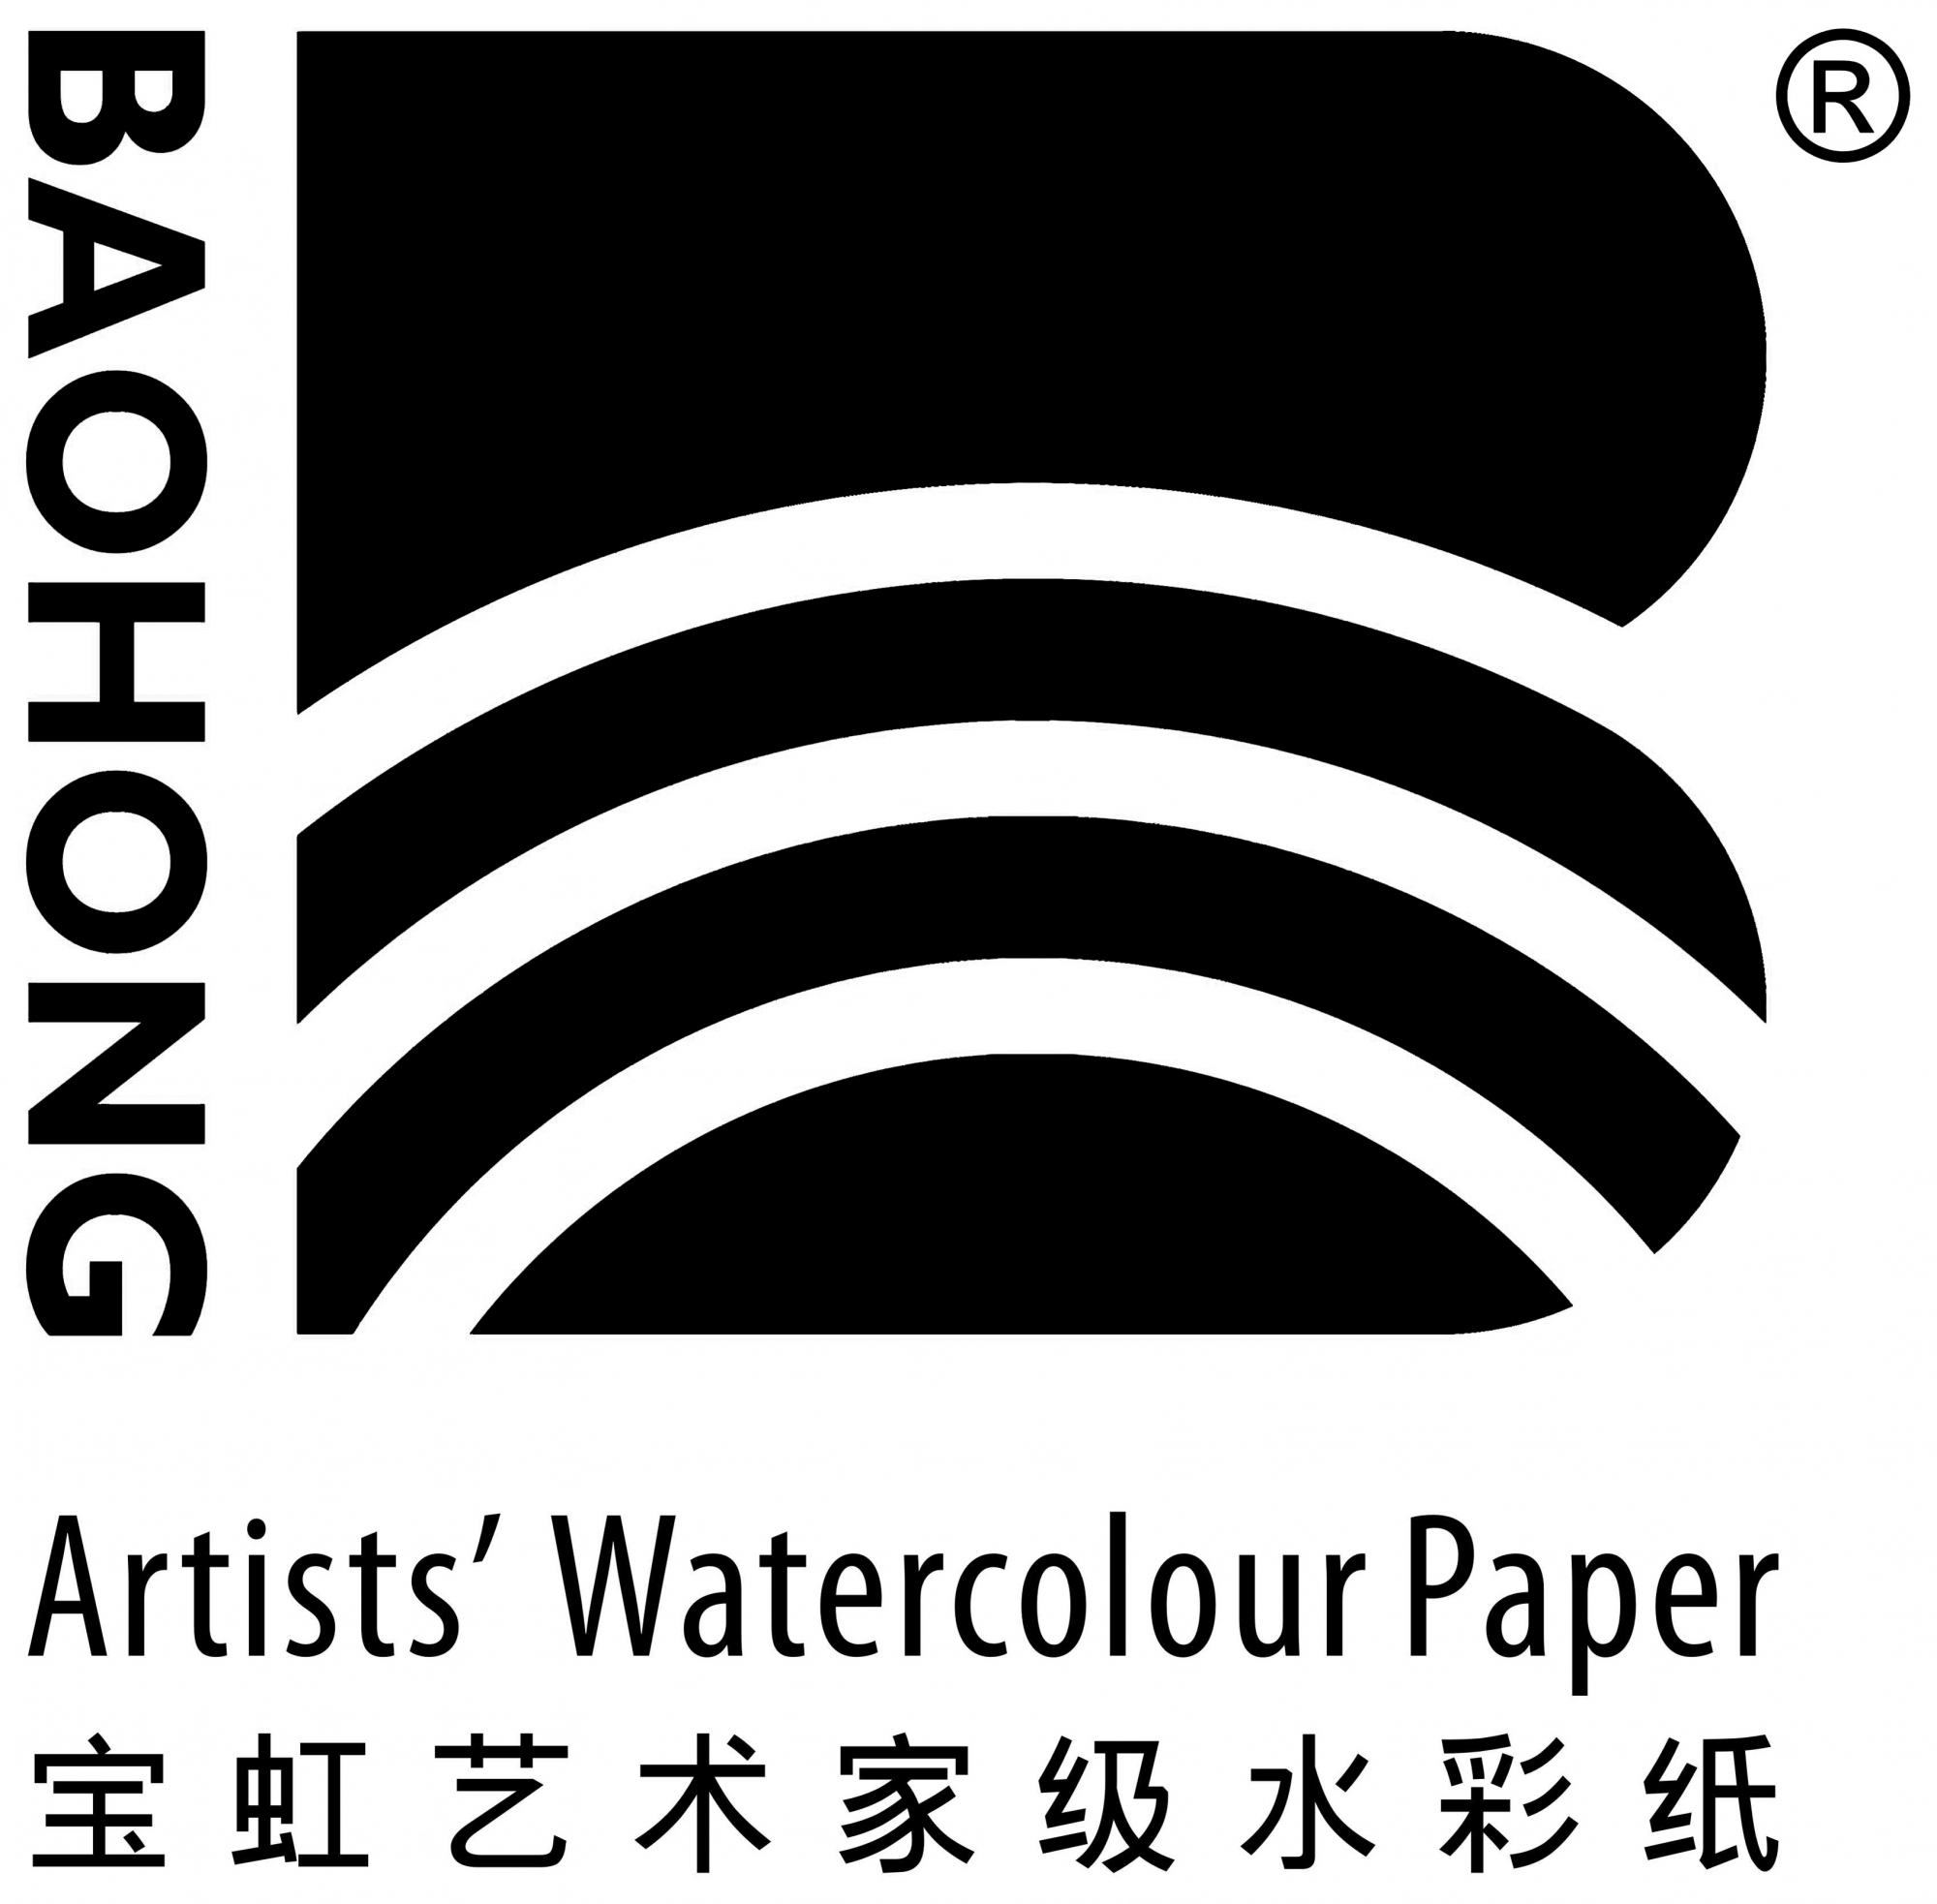 The Baohong Artists' Watercolour Paper Prizes